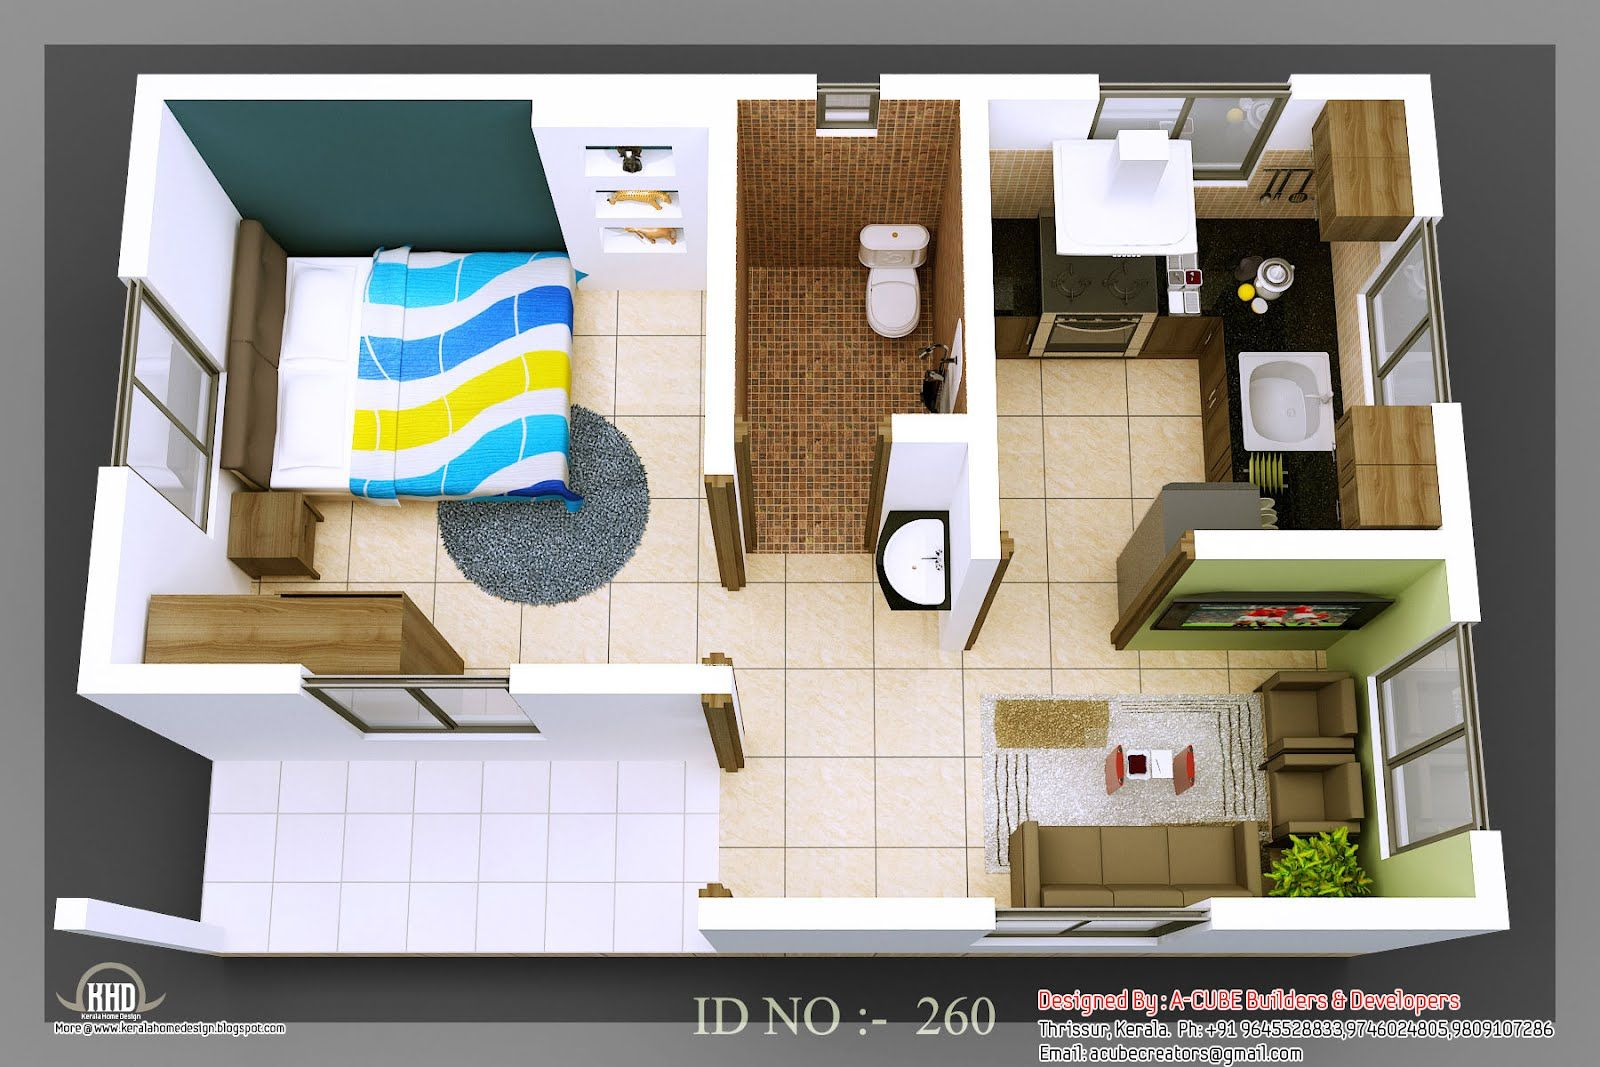 3d Isometric Views Of Small House Plans Kerala House Design Small House Layout Small House Design